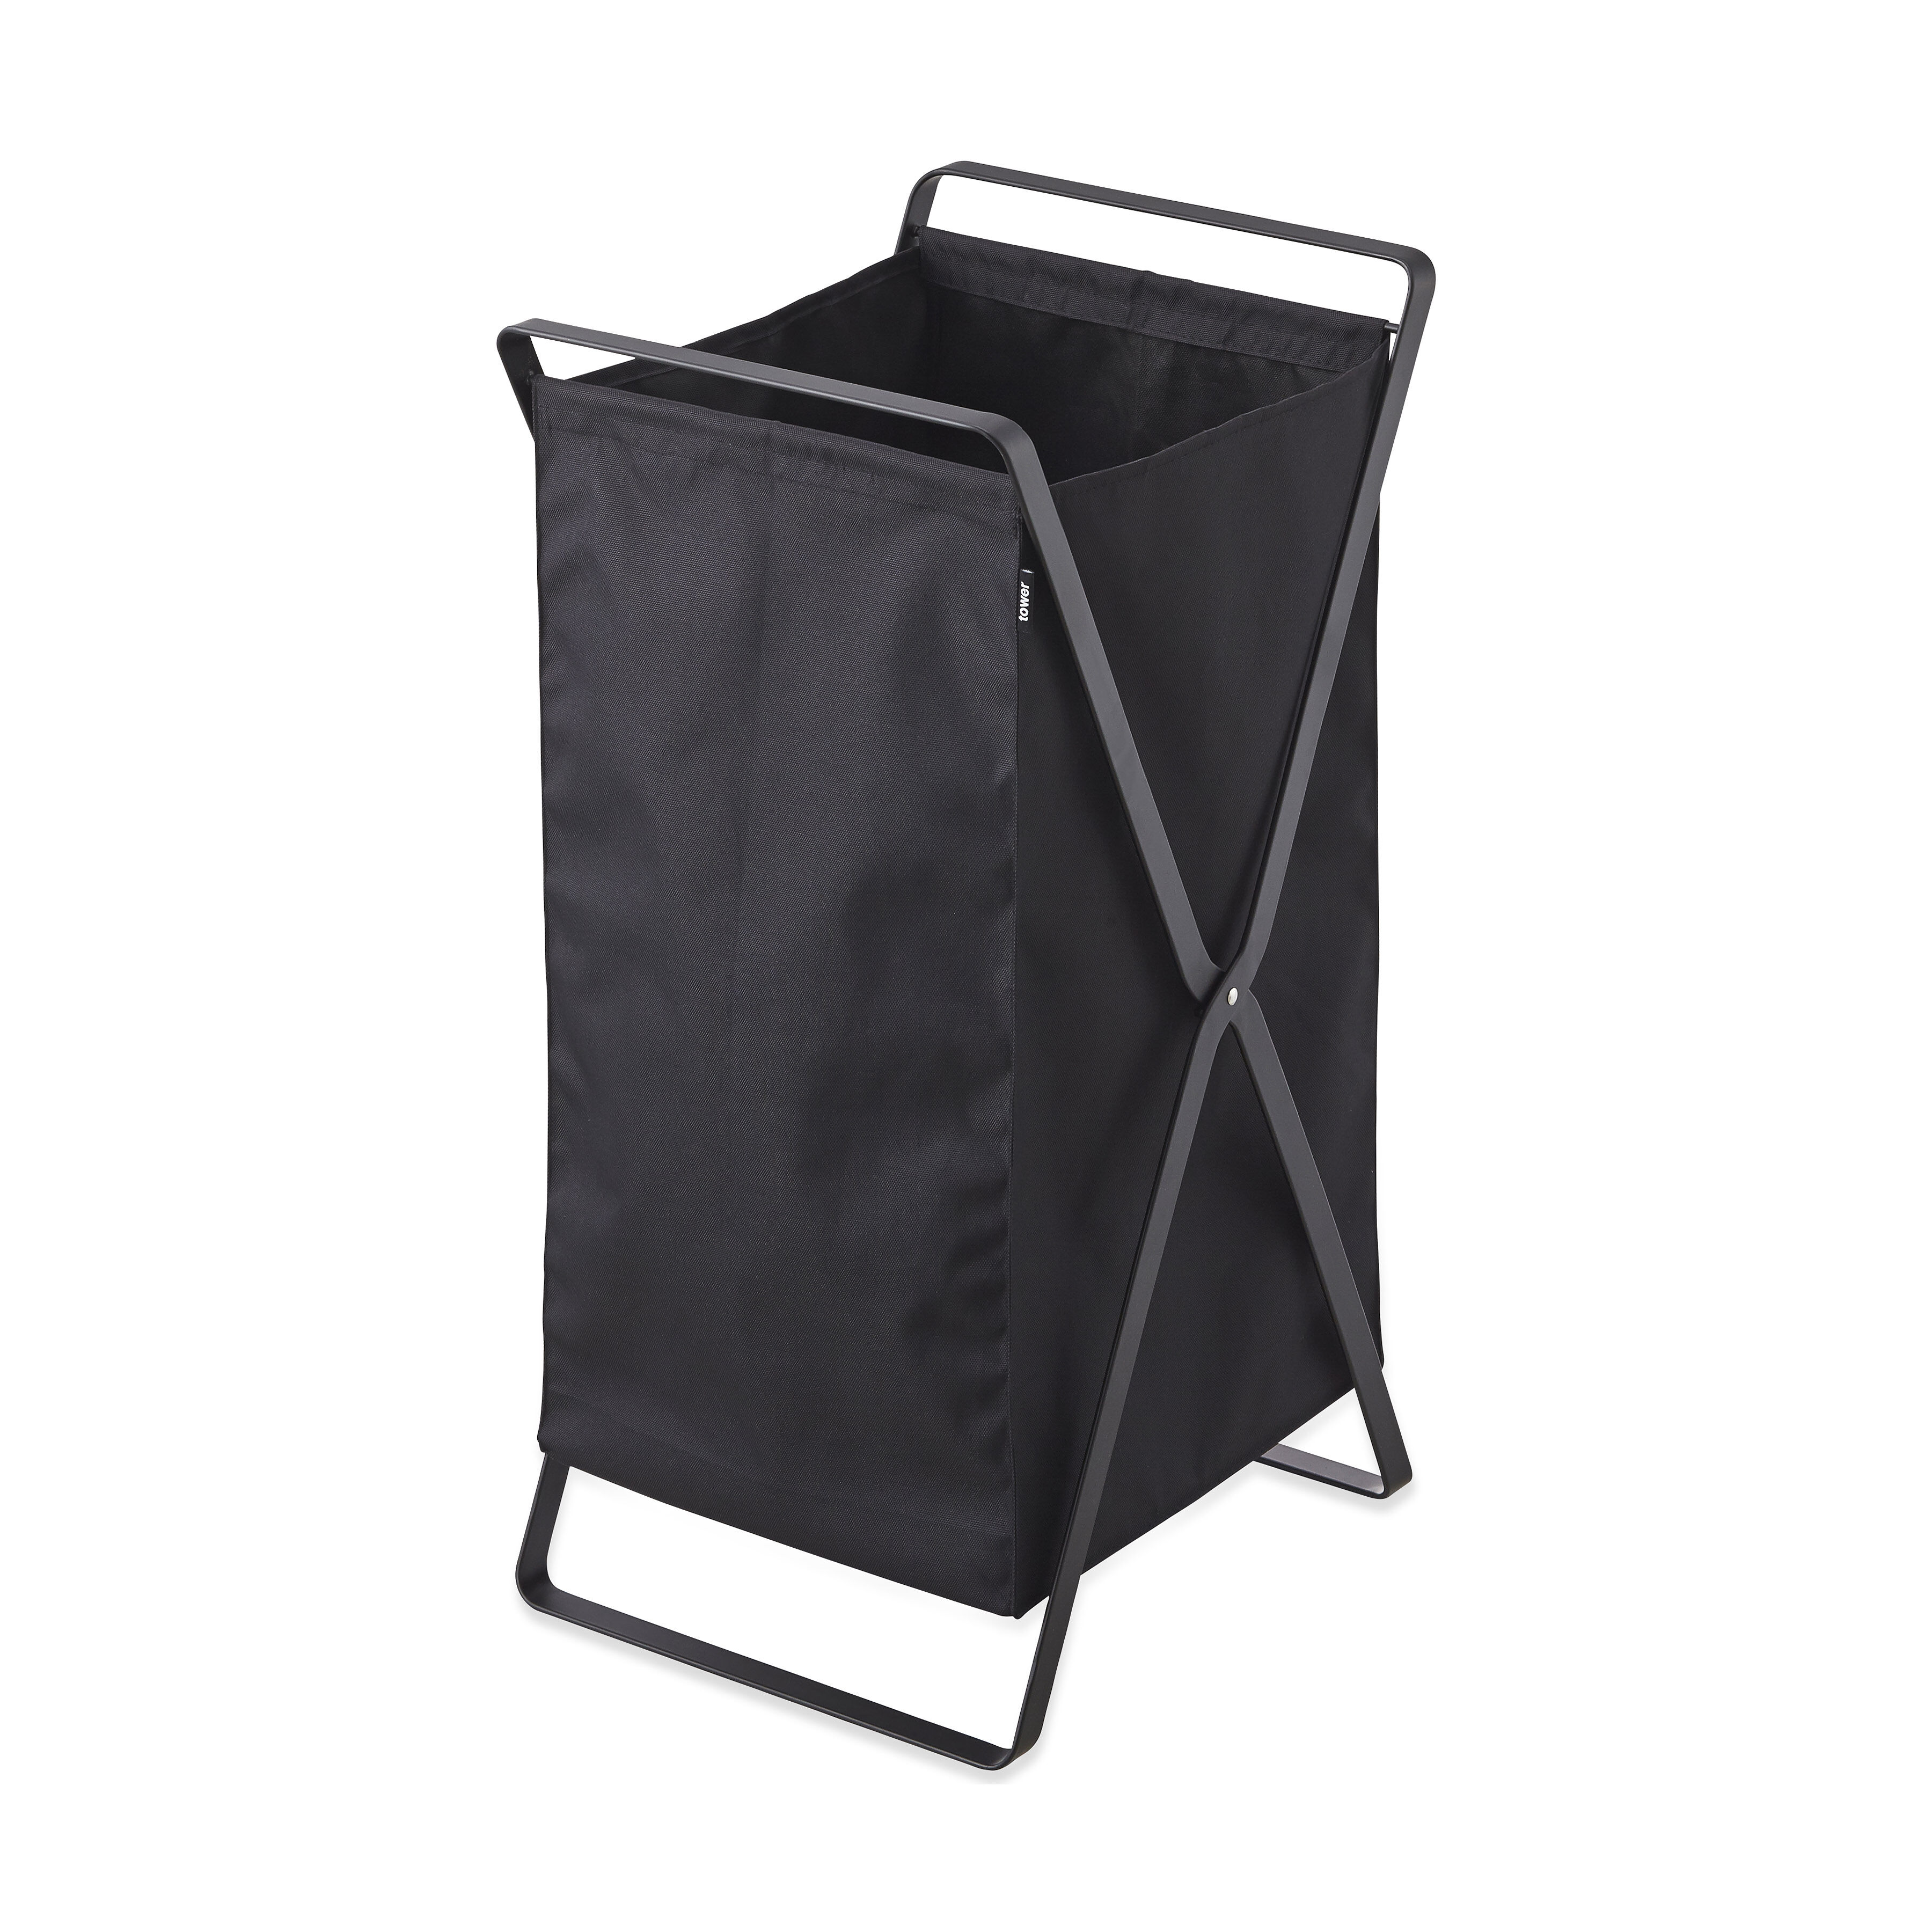 Closed Laundry Hamper Collapsible Laundry Basket Moma Design Store